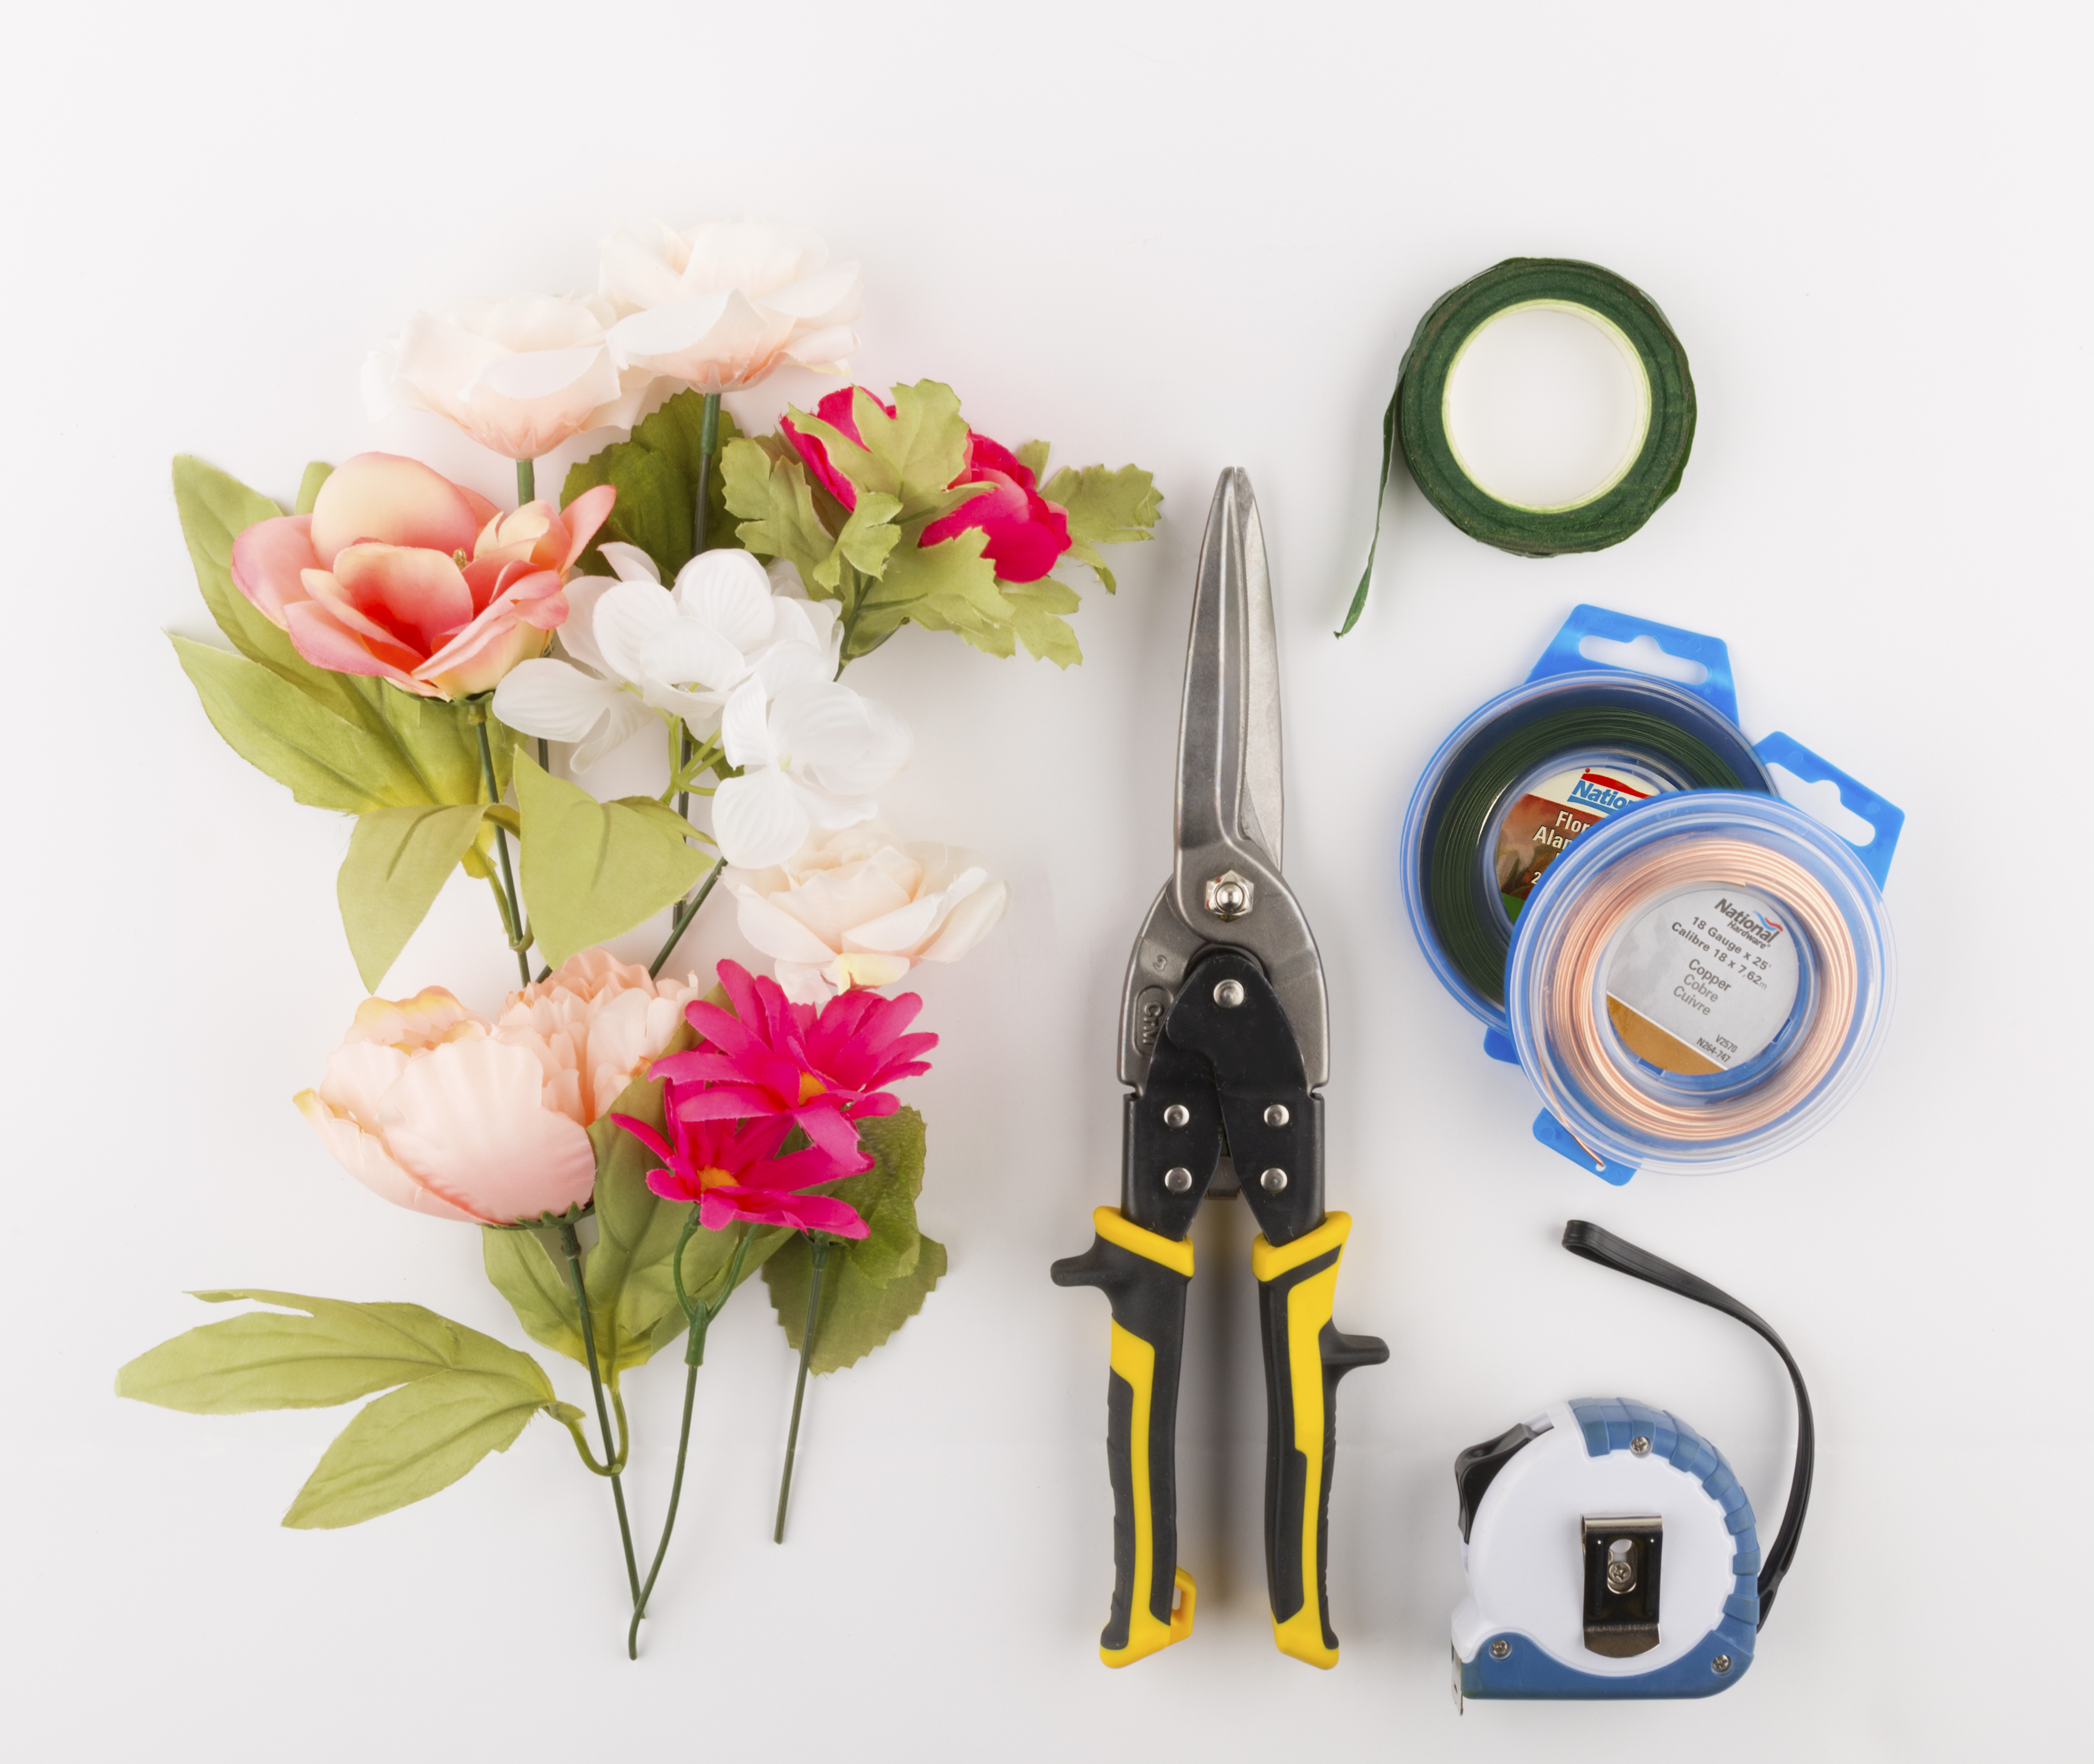 Diy flower crown for less national hardware its the little to start youll need the following supplies measuring tape wire cutter copper wire floral wire floral tape flowers greenery izmirmasajfo